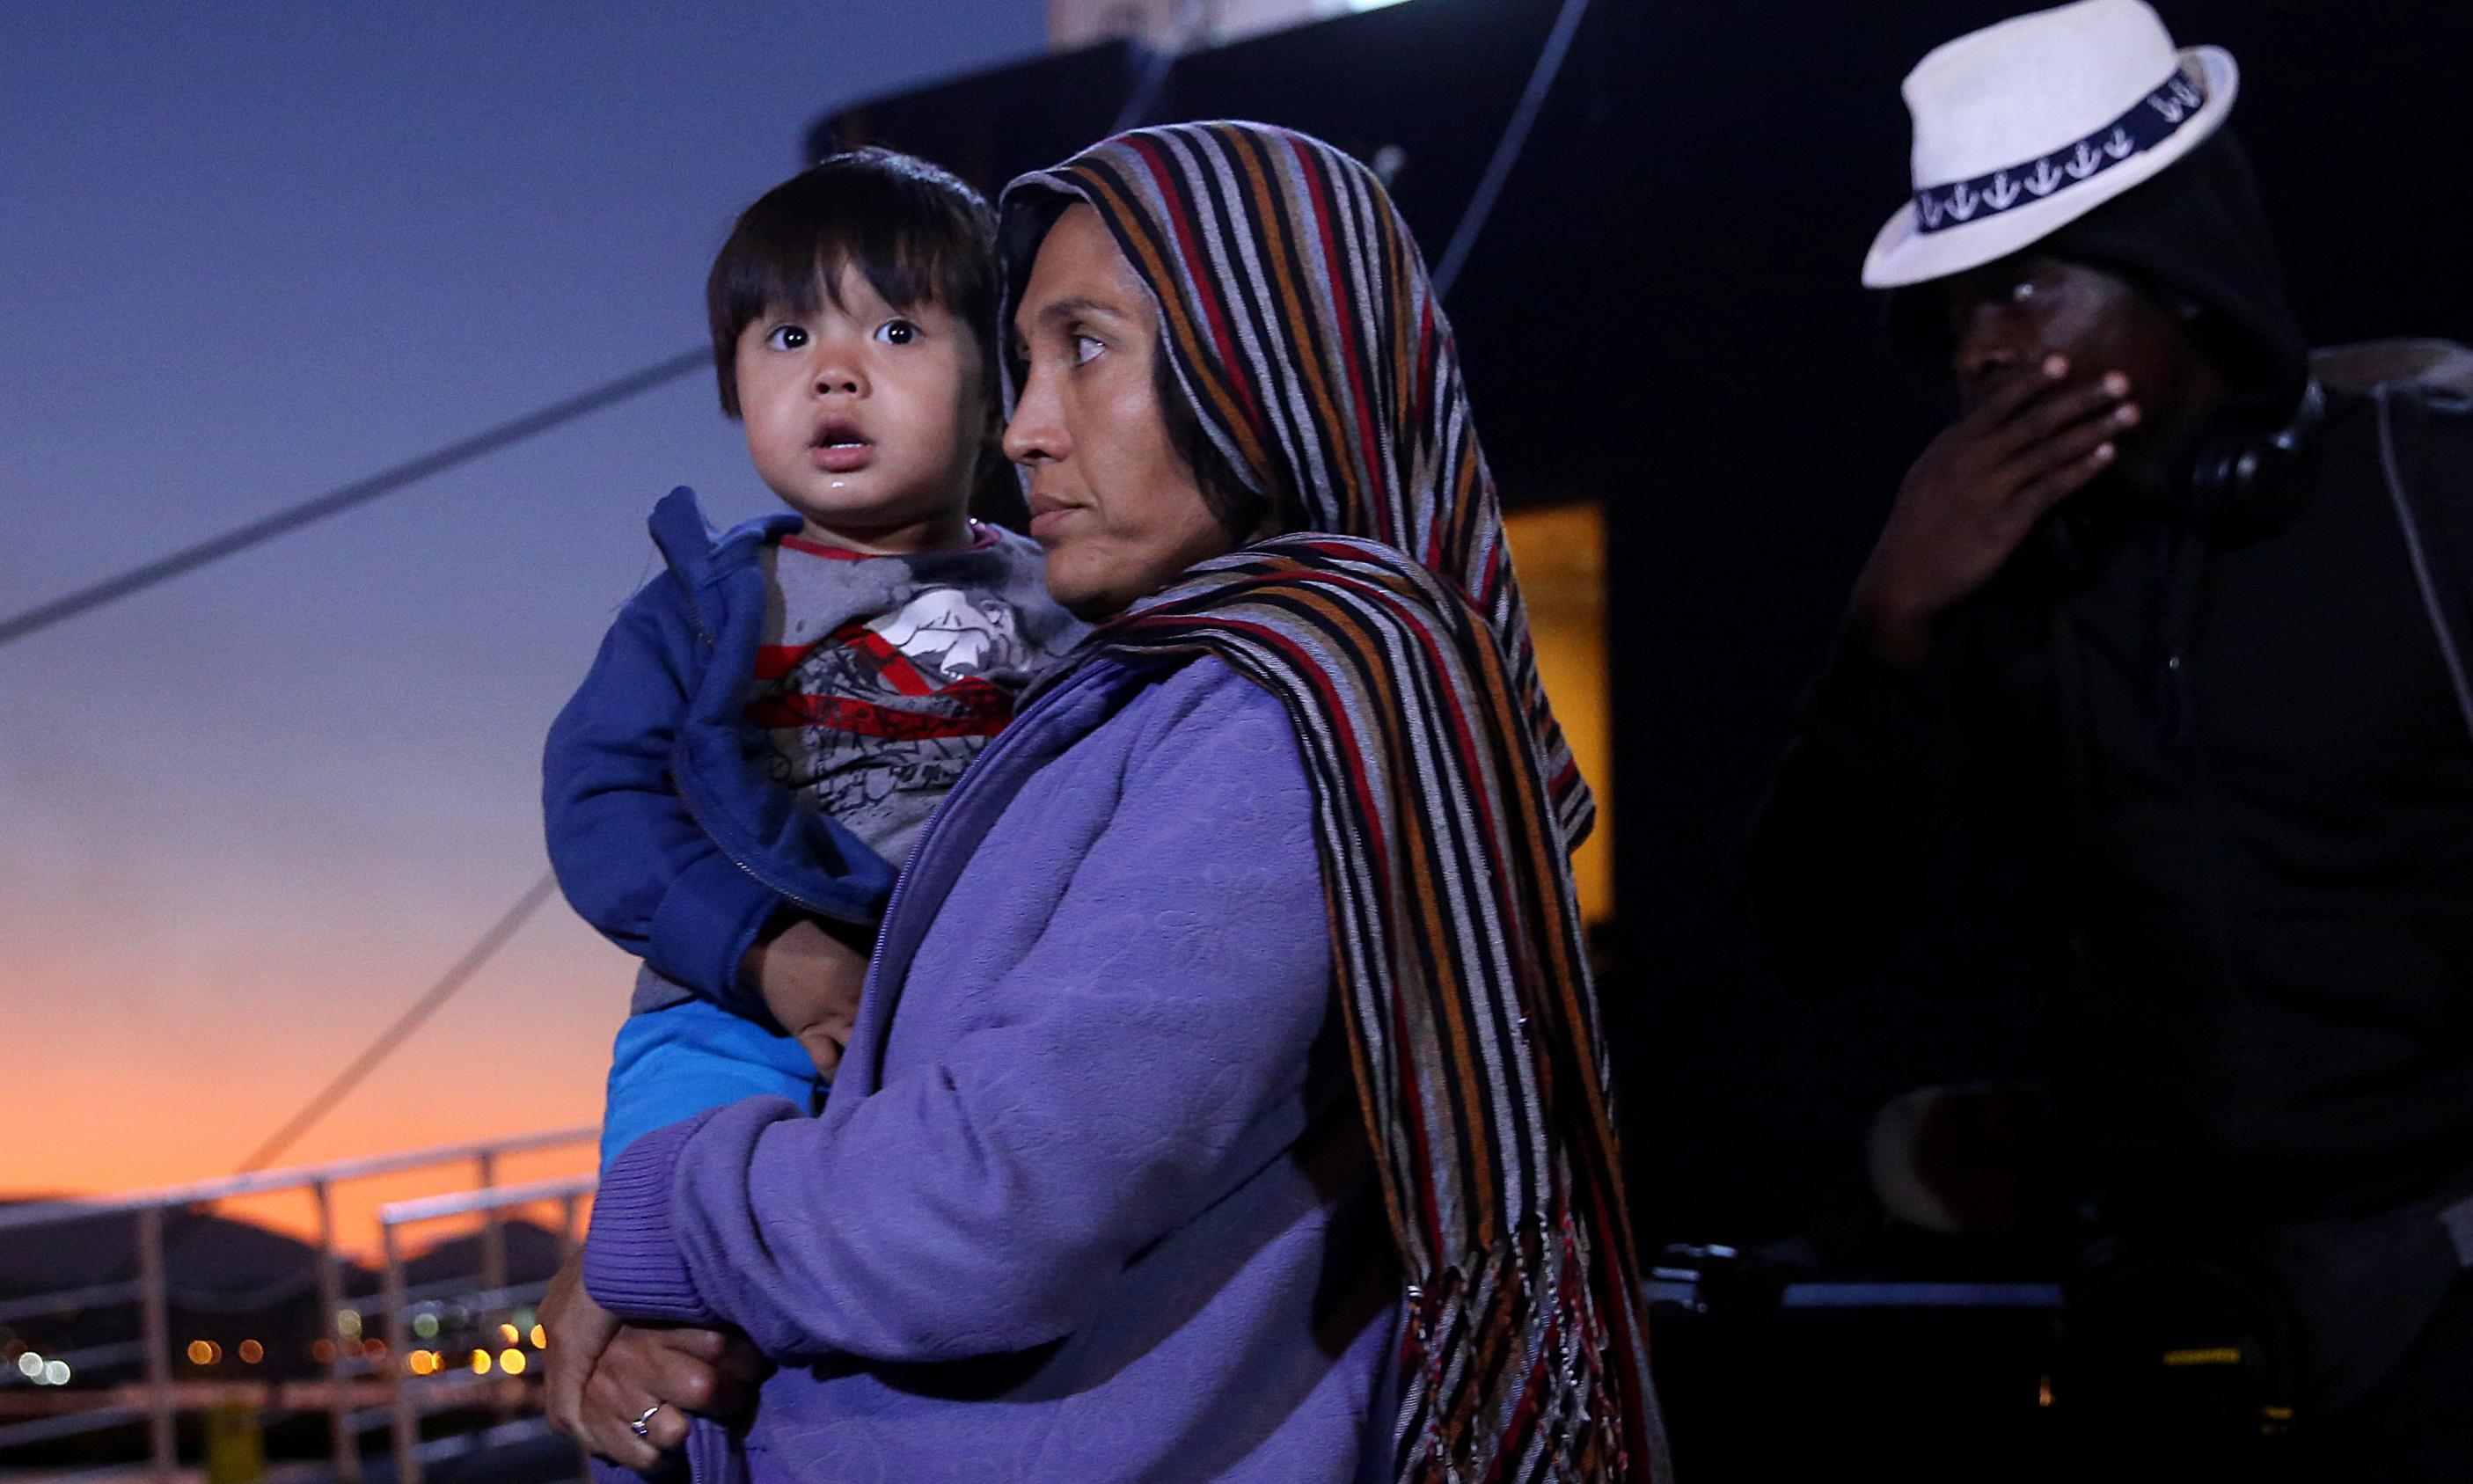 In Lesbos's Moria camp, I see what happens when a child loses all hope